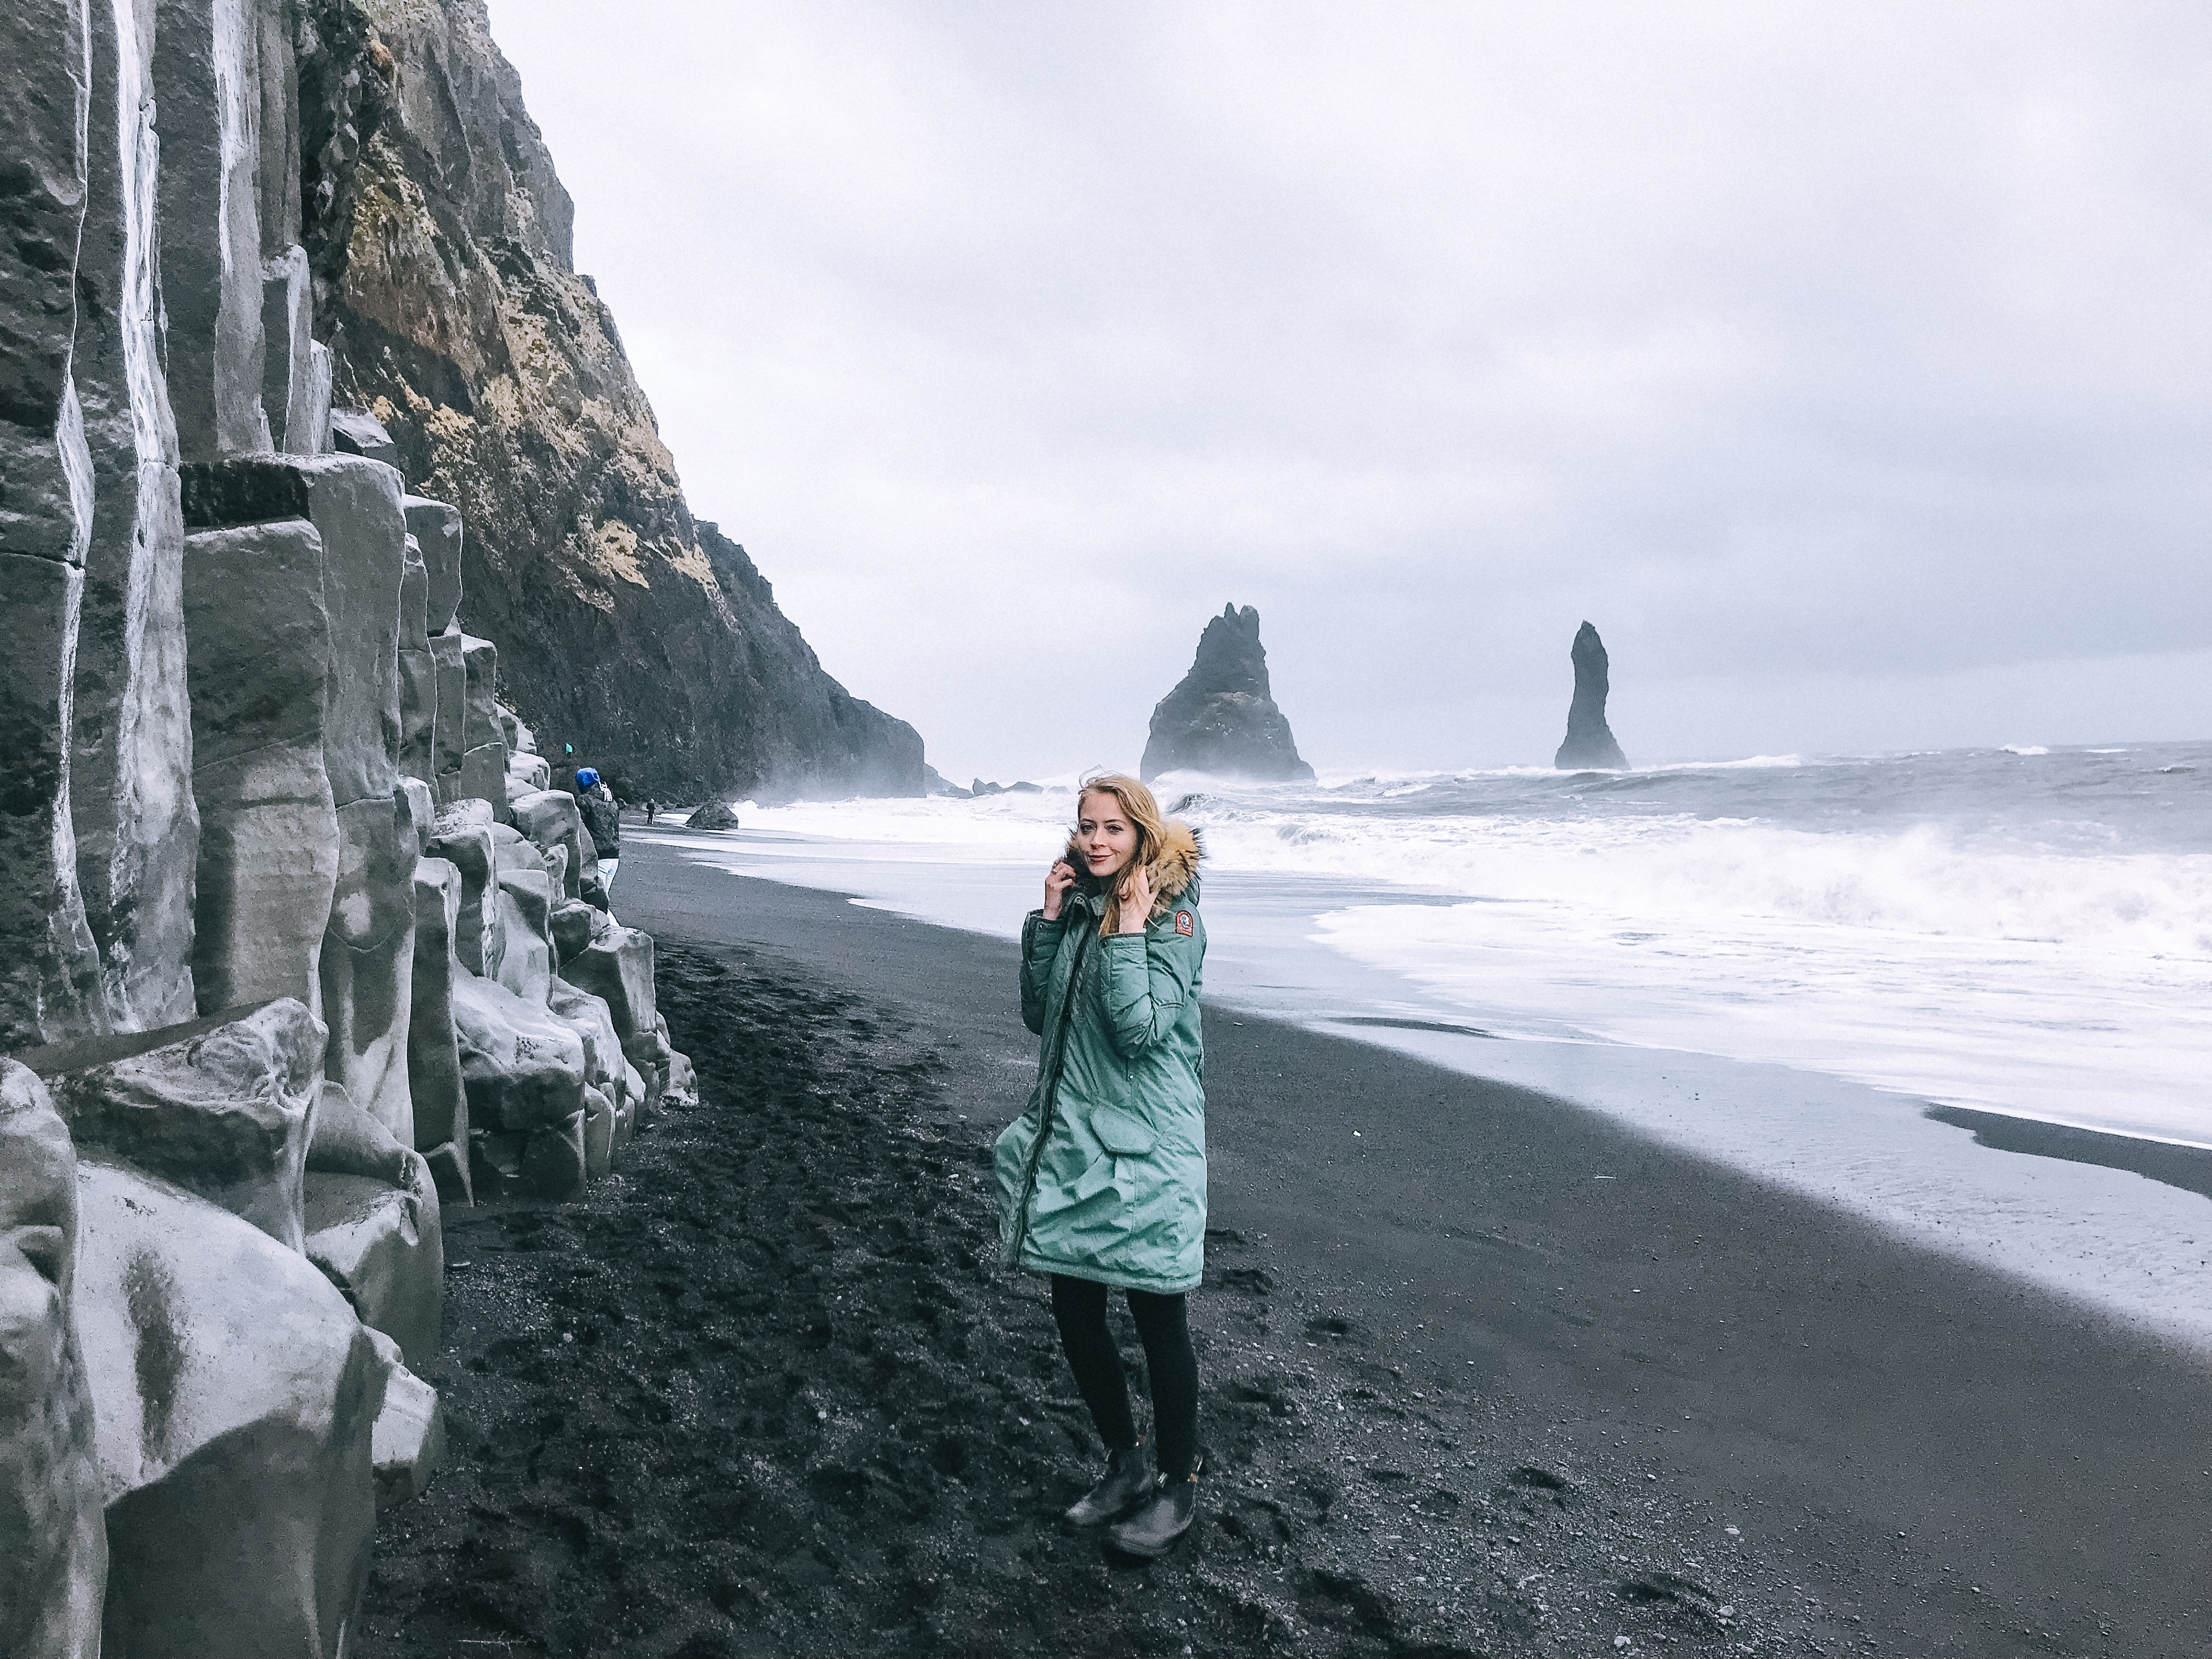 Reynisfjara black sand beach is dangerous to visit, but gorgeous even in bad weather conditions. I wore a classic parka from Parajumpers to handle the elements.